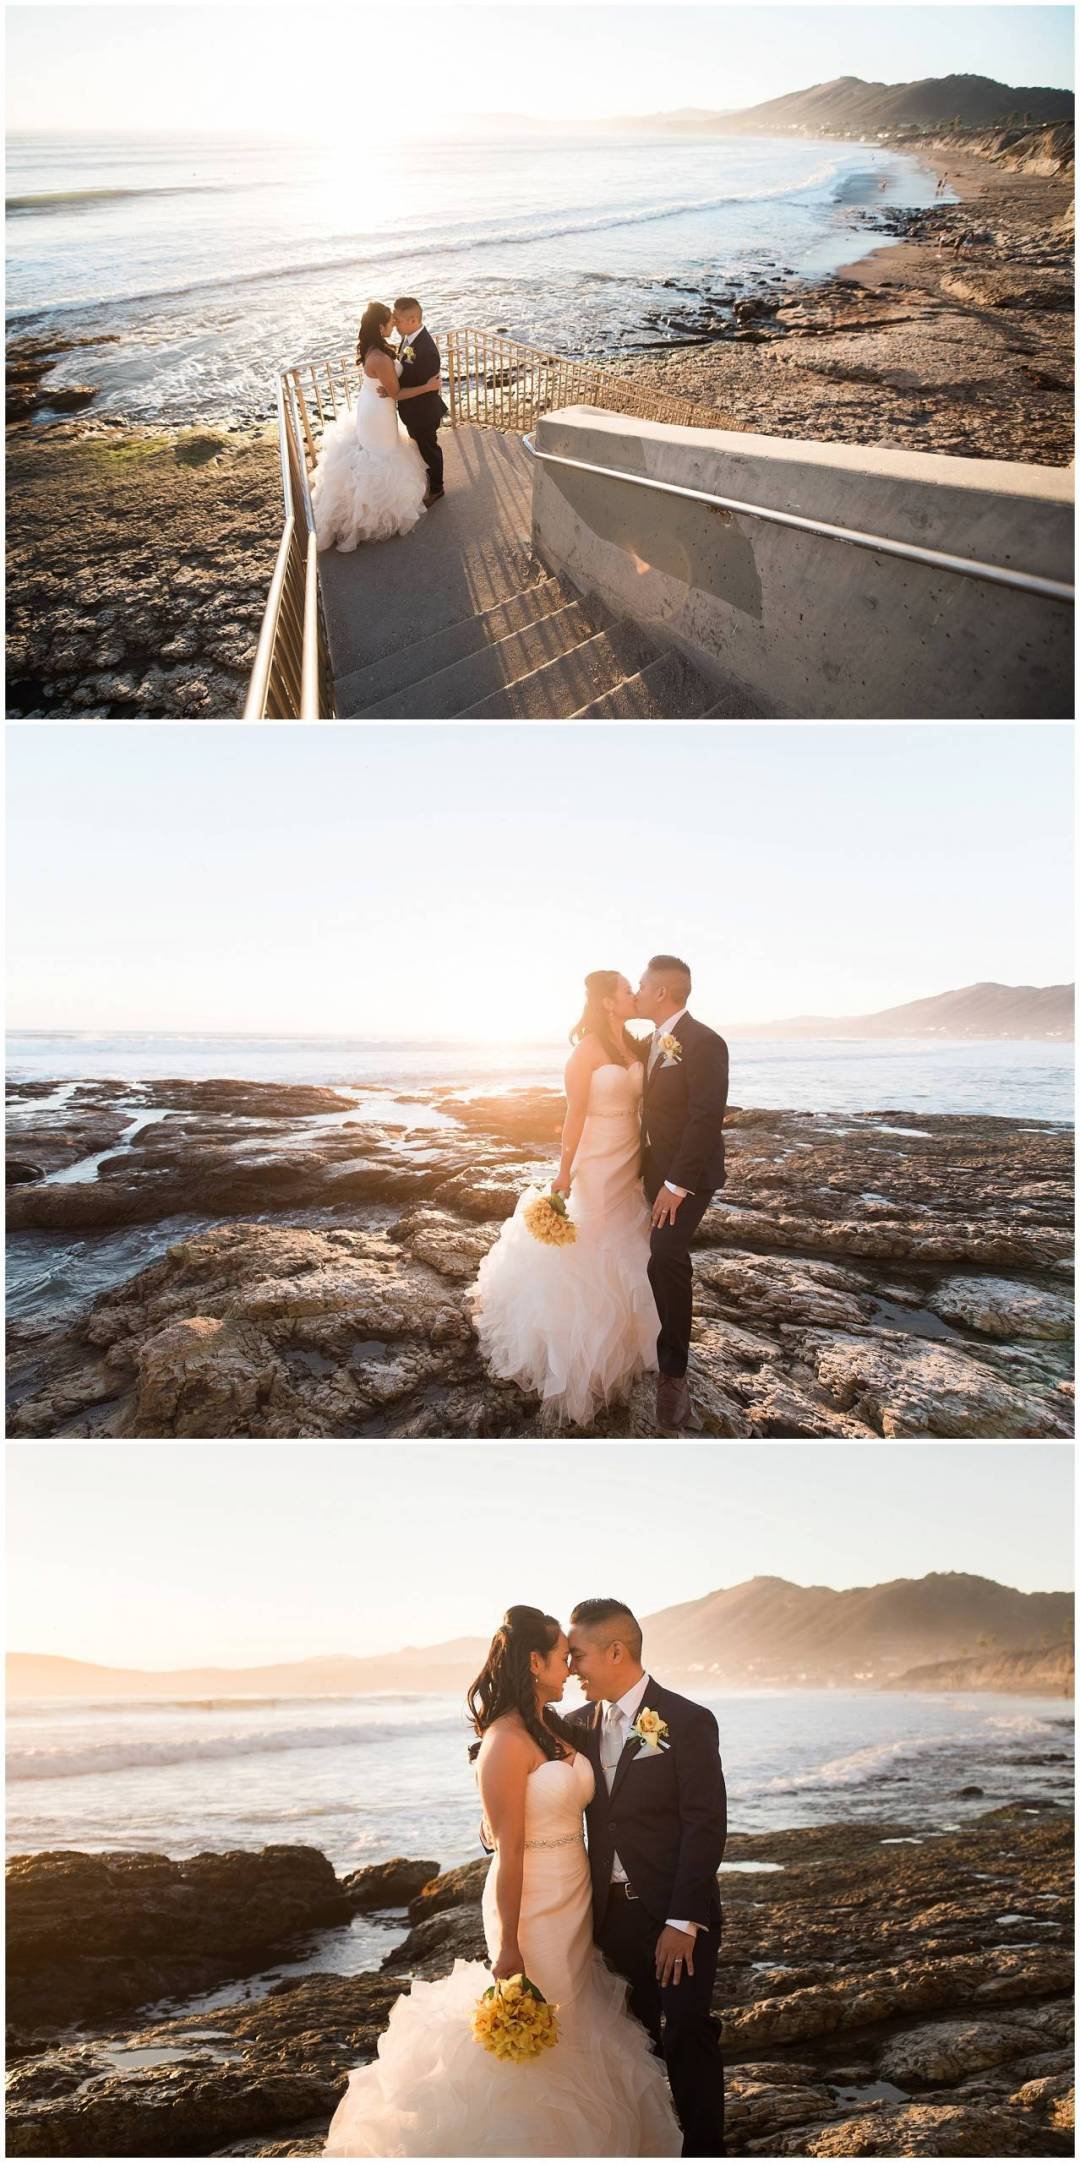 Ha & Allen Wedding Third Element Photography & Cinema Pismo Beach Cliffs Resort Central Coast Hybrid Film Wedding Photographer_0033